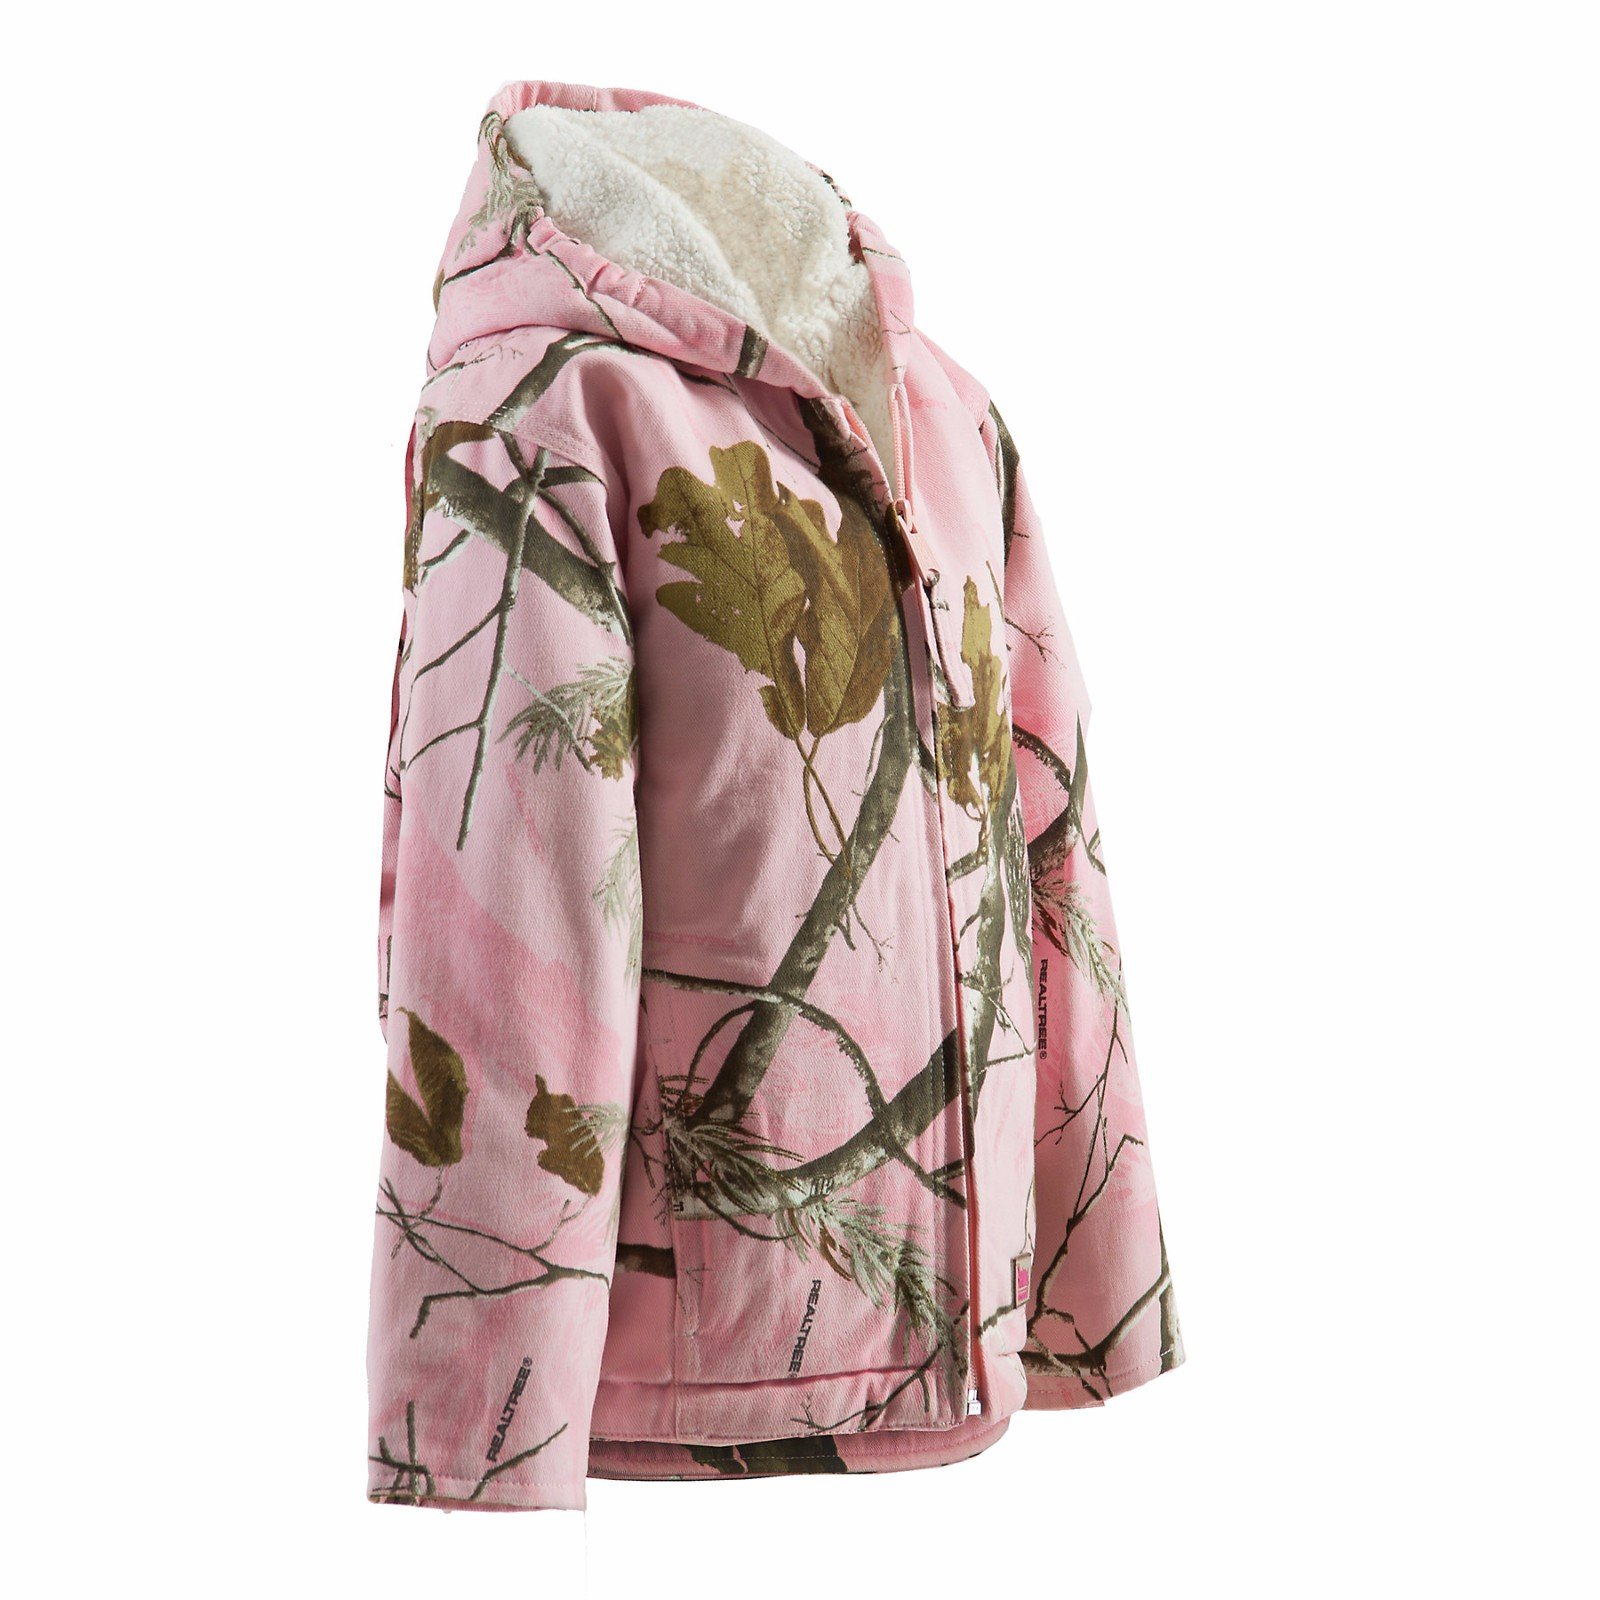 Berne Daisy Sherpa Lined Coat - Fine Sherpa Lined Realtree Pink Regular - L by Berne (Image #1)